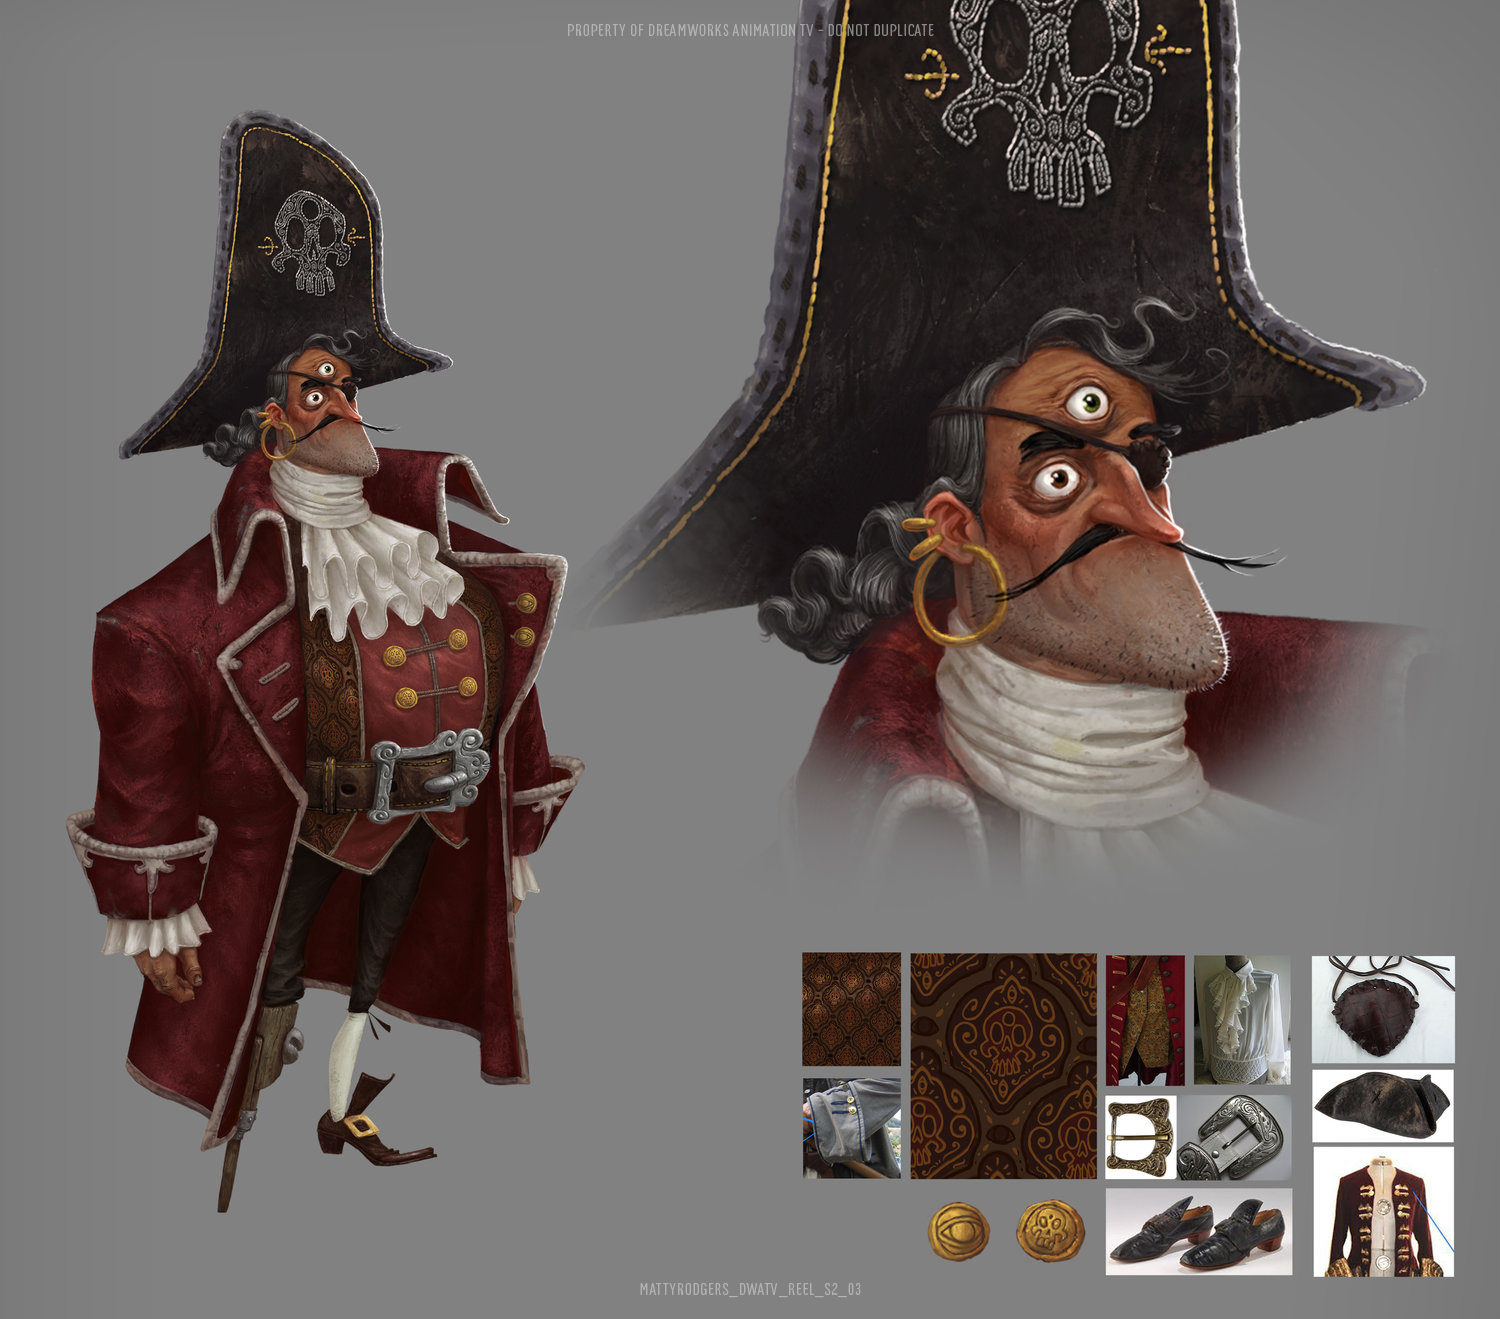 Character design by Guillermo Ramírez Calvo. Colour by Matty. Art direction by Edison Yan. This guy was a lot of fun to paint! Initially I presented some more varied colour schemes for his outfit but the director liked this unified look.